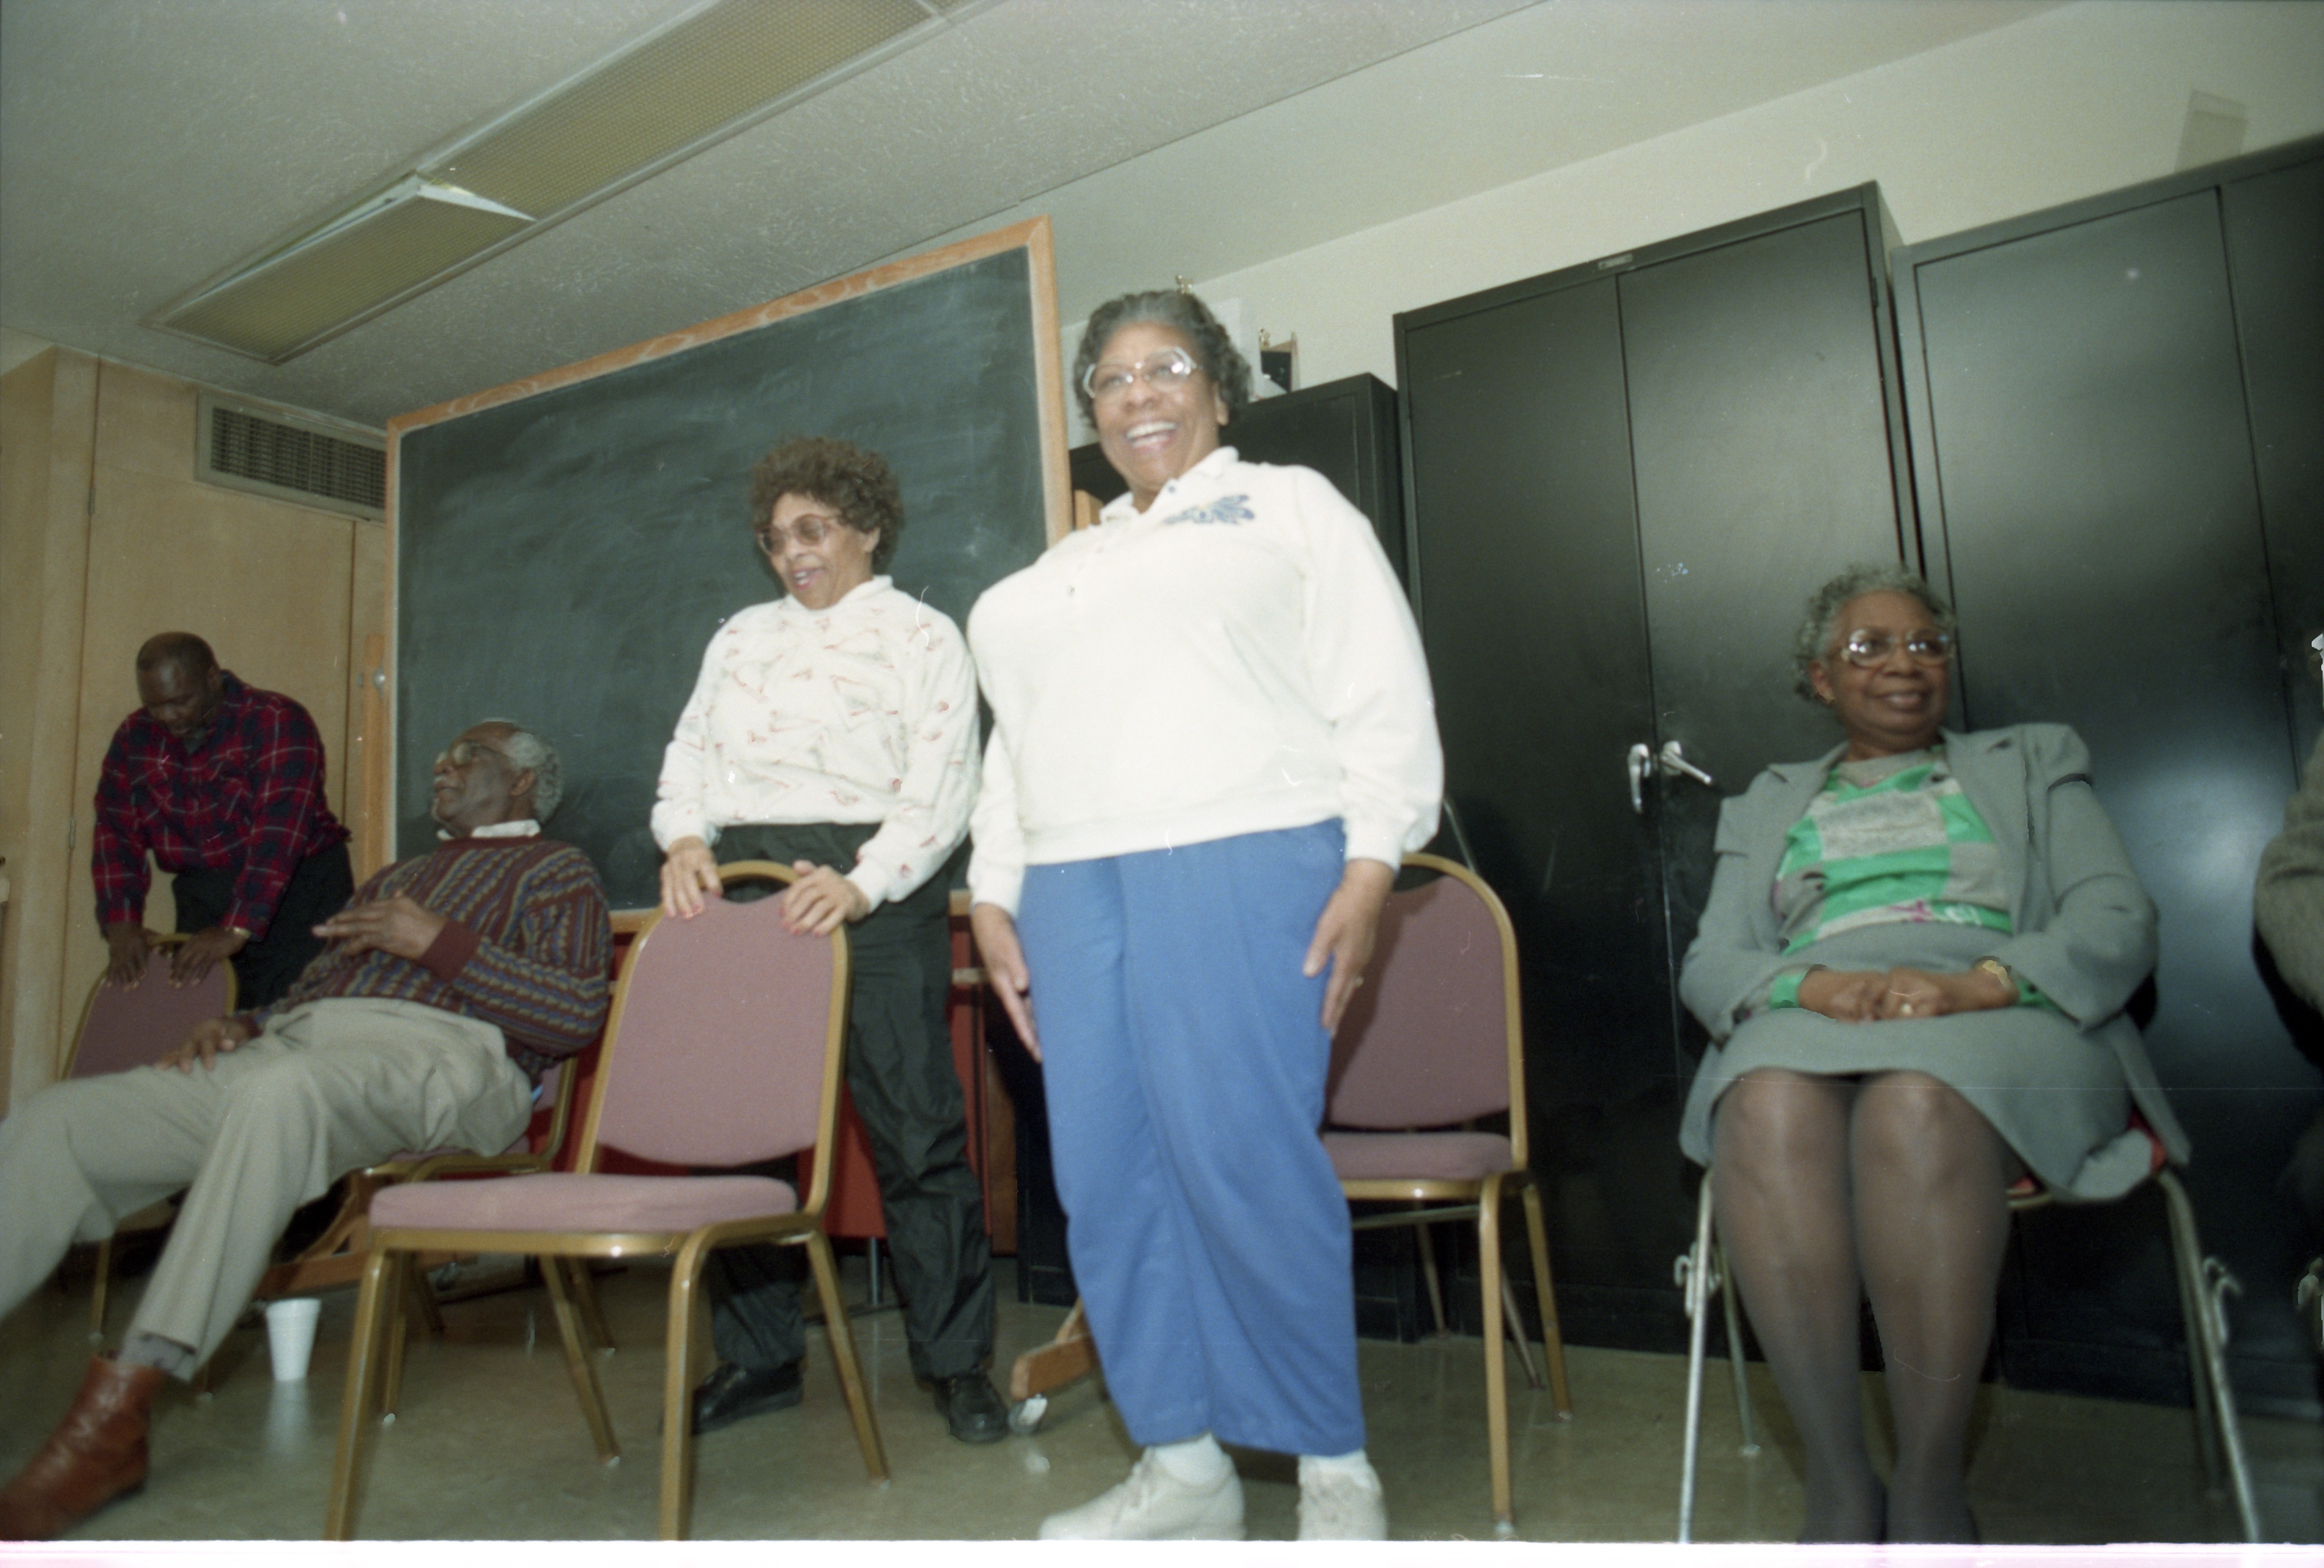 Senior Adults At The Ann Arbor Community Center For Chair Exercise Class Take A Break,  March 11, 1995 image